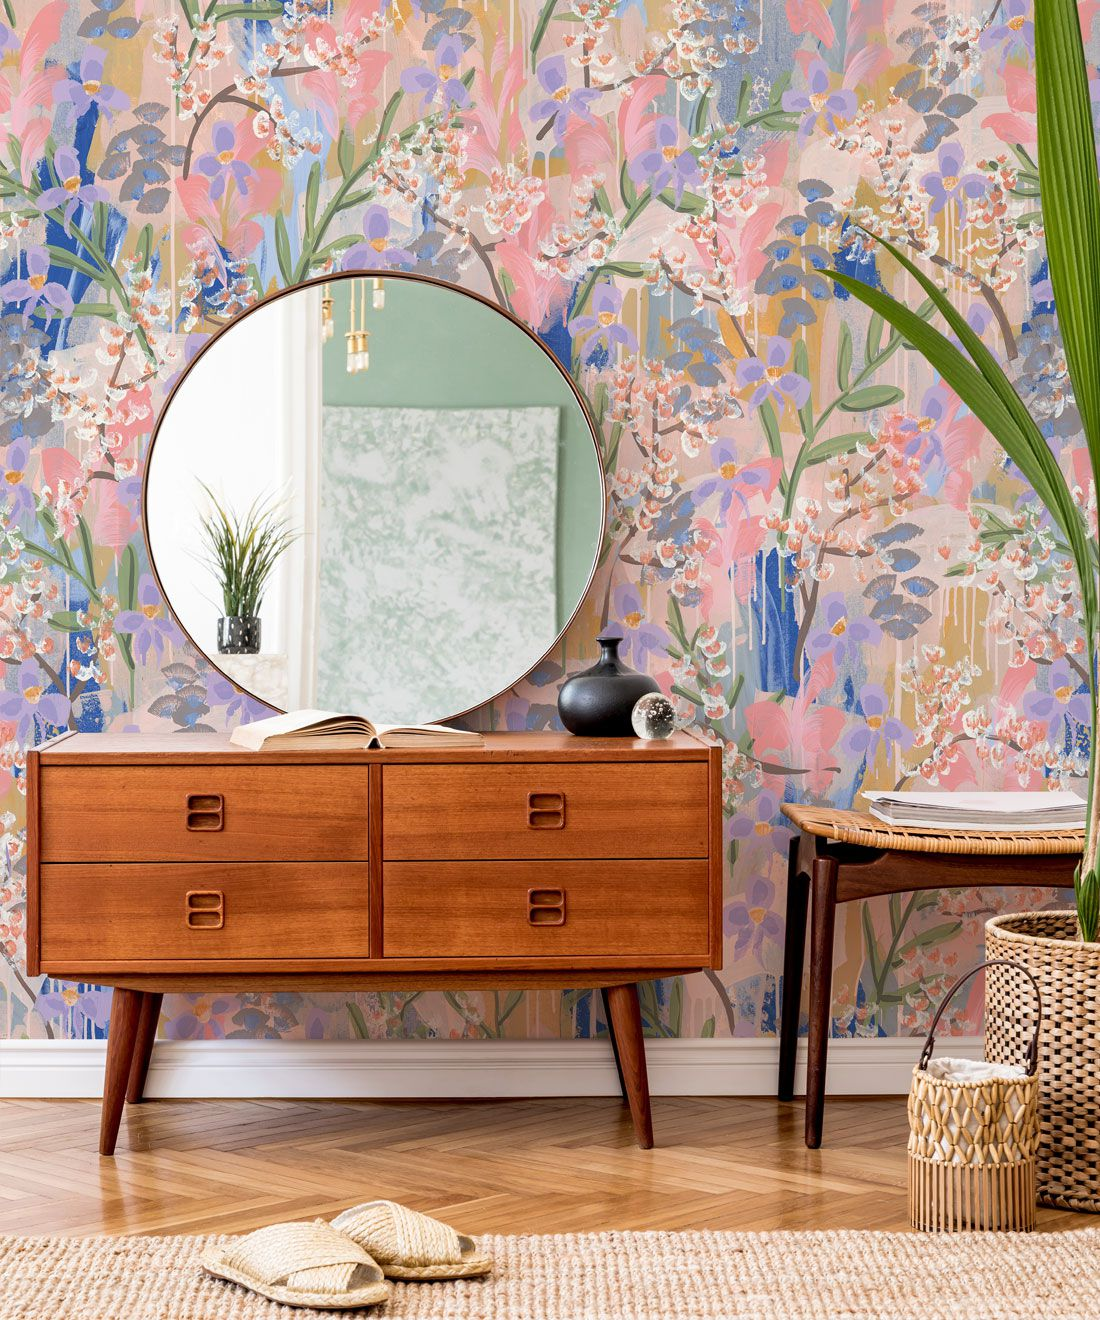 Daphne Wallpaper •Colorful Floral Wallpaper • Tiff Manuell • Abstract Expressionist Wallpaper • Close Up Insitu